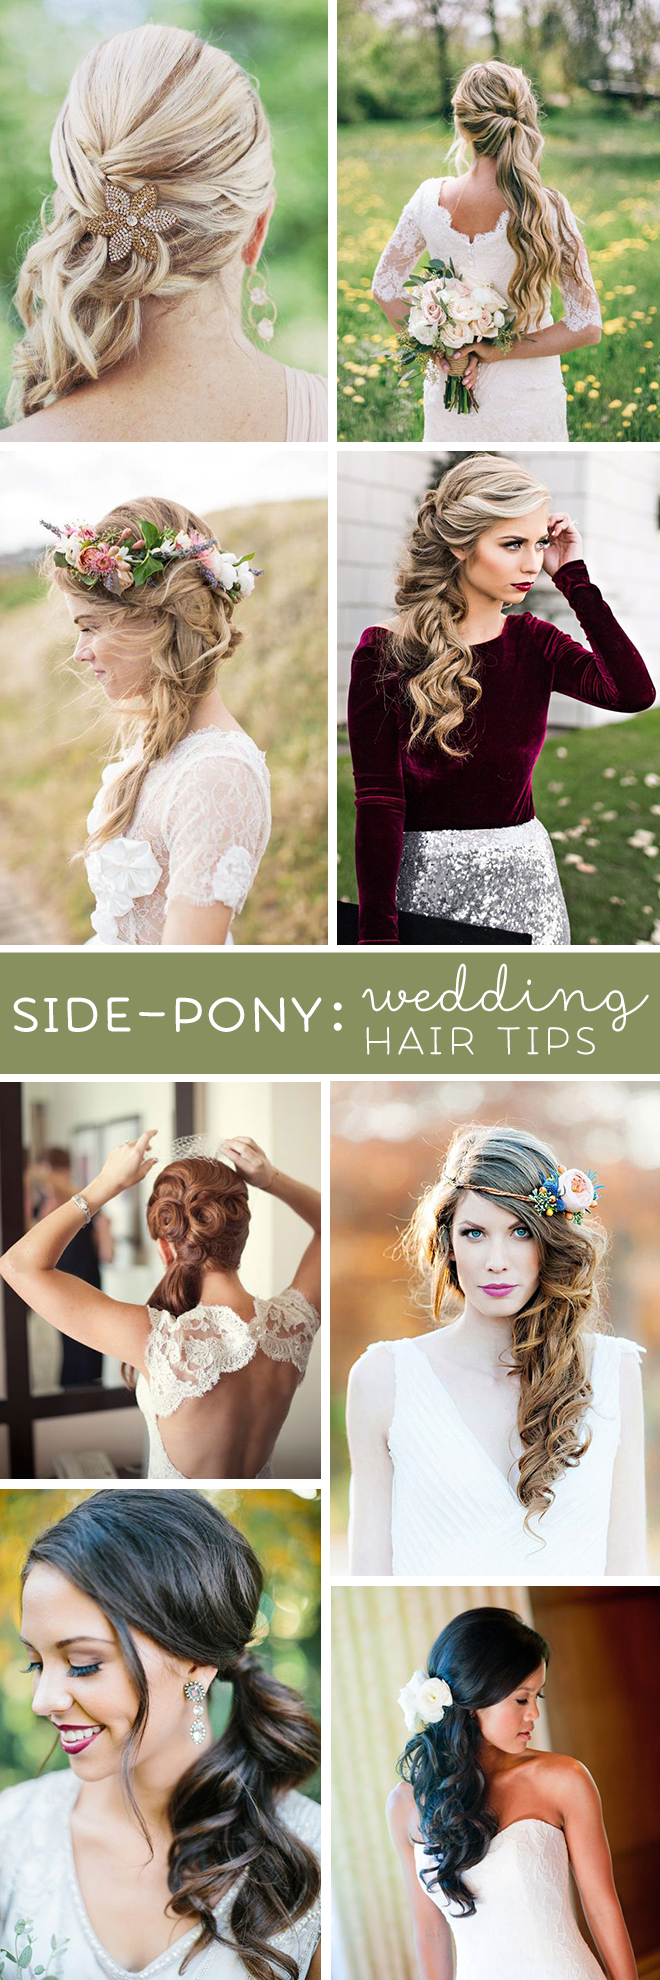 These Are The Absolute BEST Wedding Hair Tips For Wearing A Side Ponytail Style